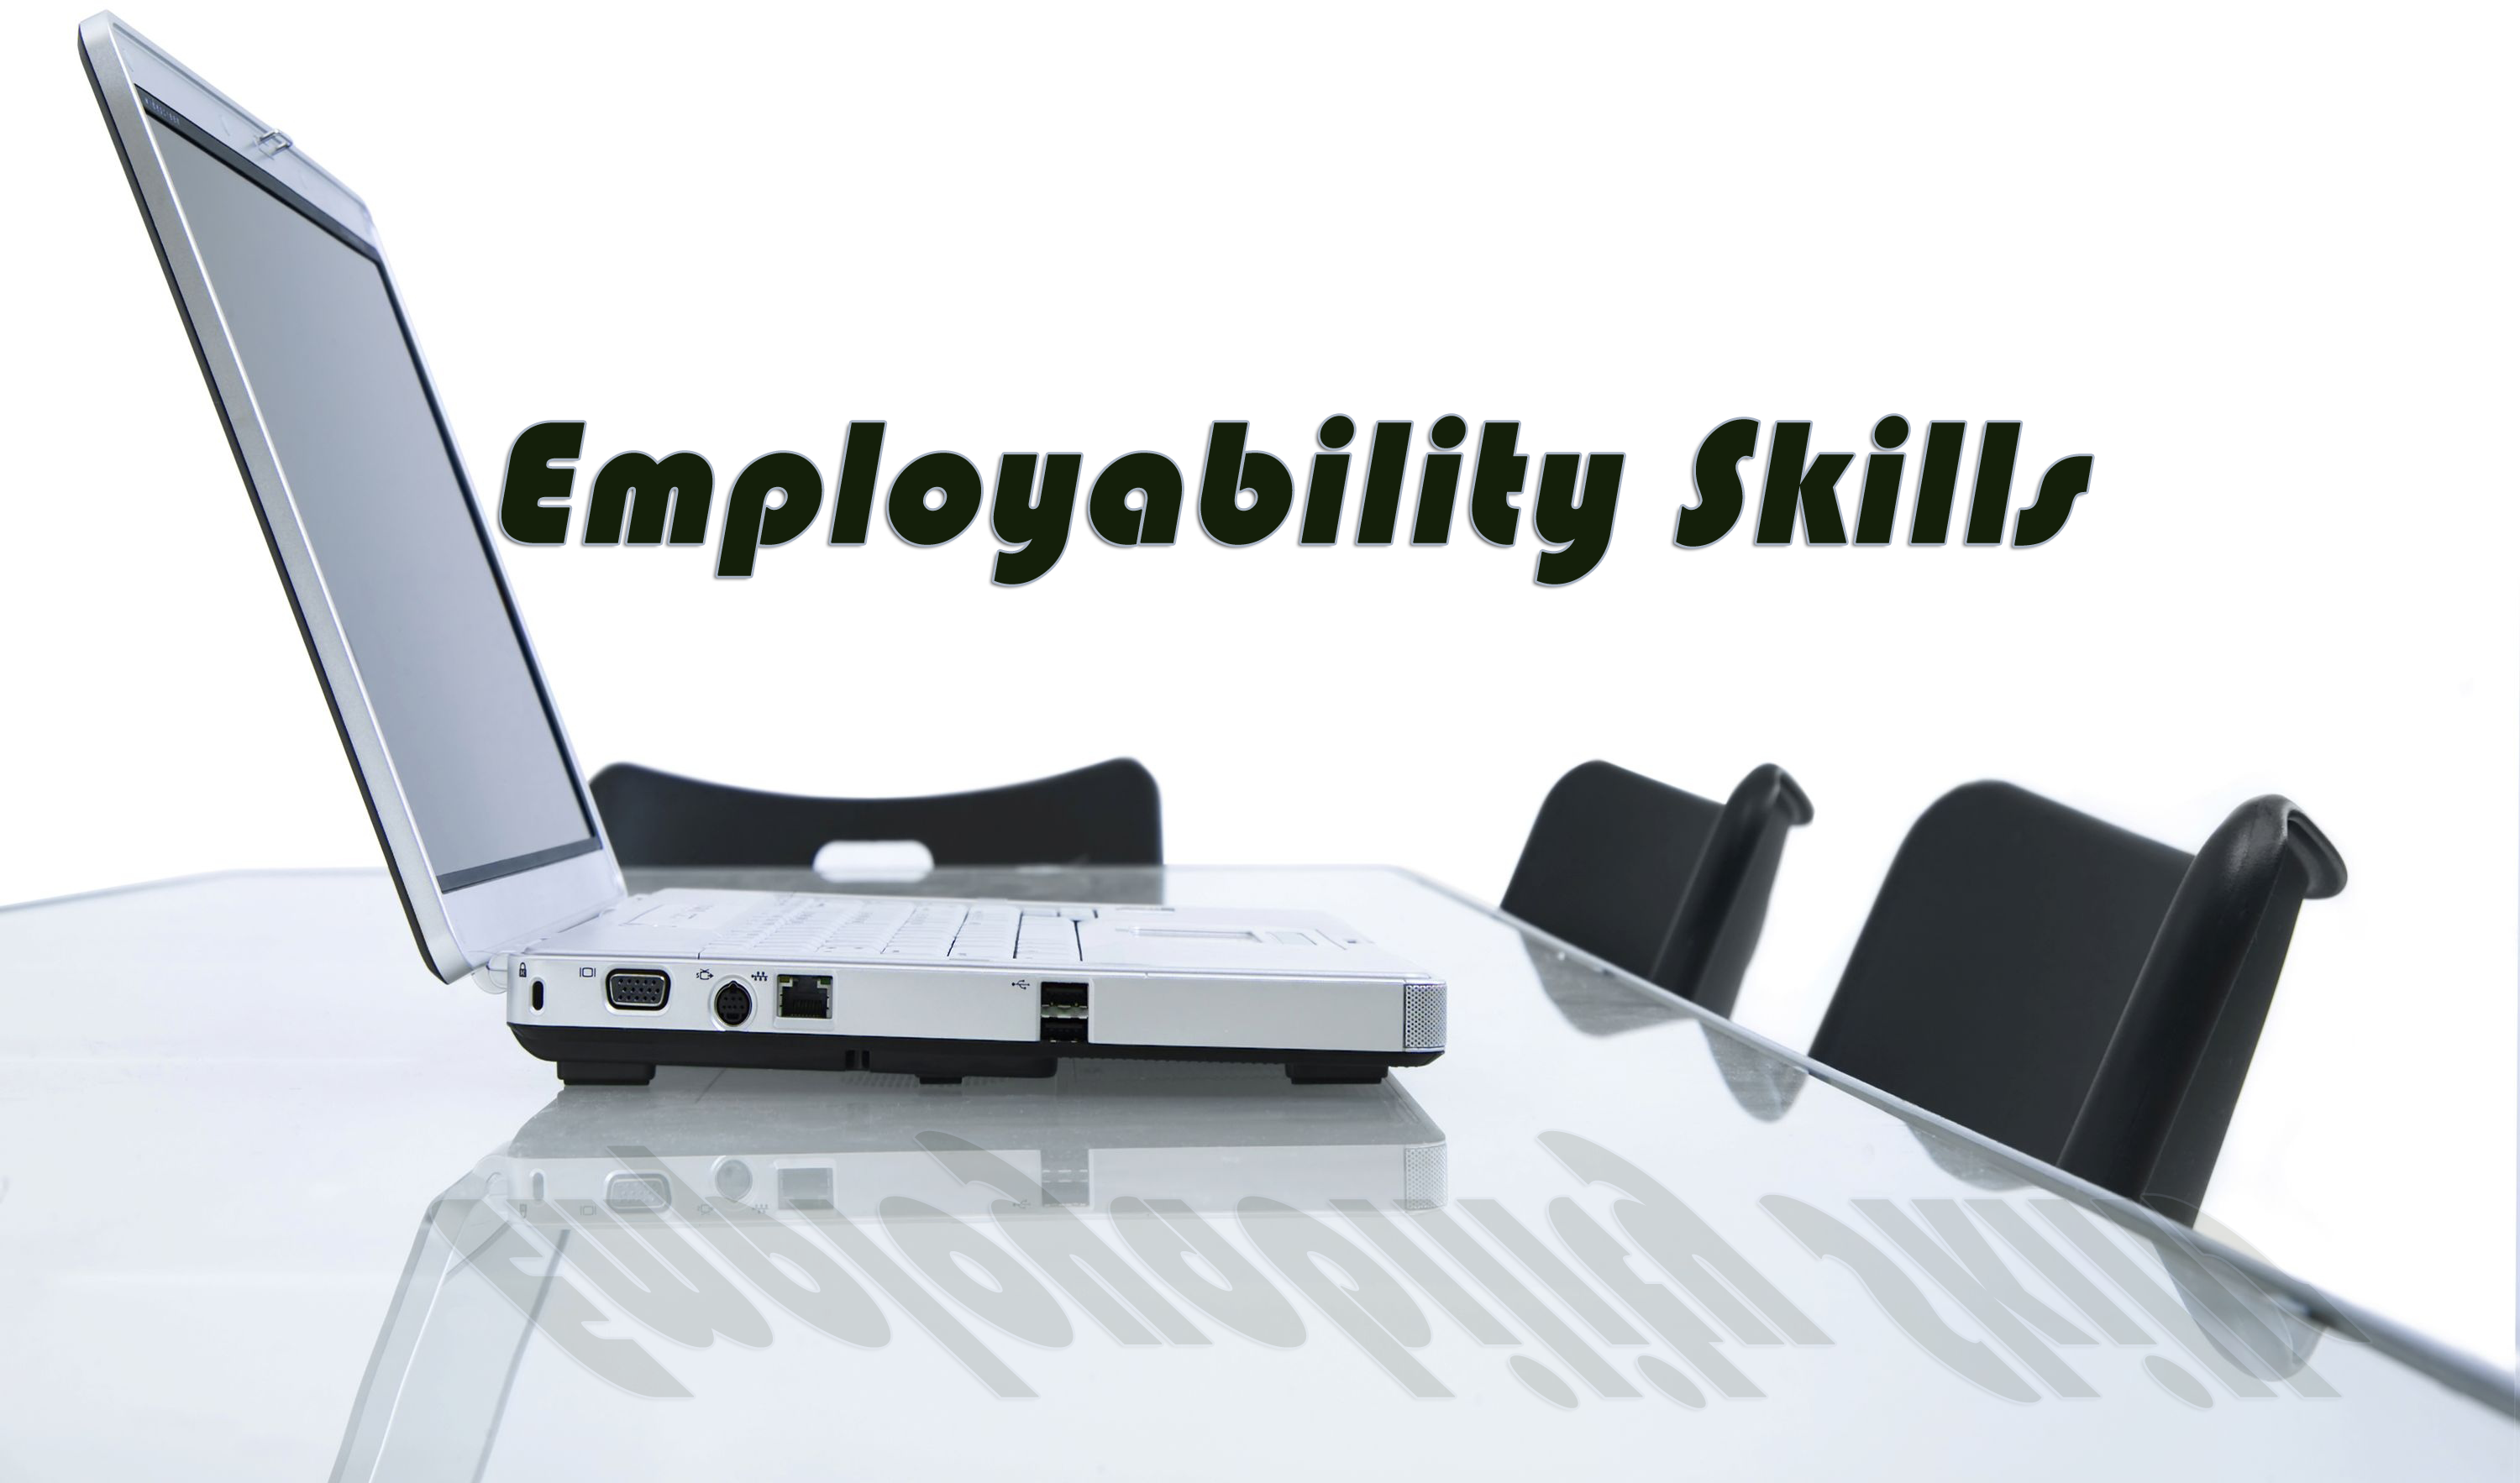 Employability Skills like Firm Handshakes Not a Thing of the Past